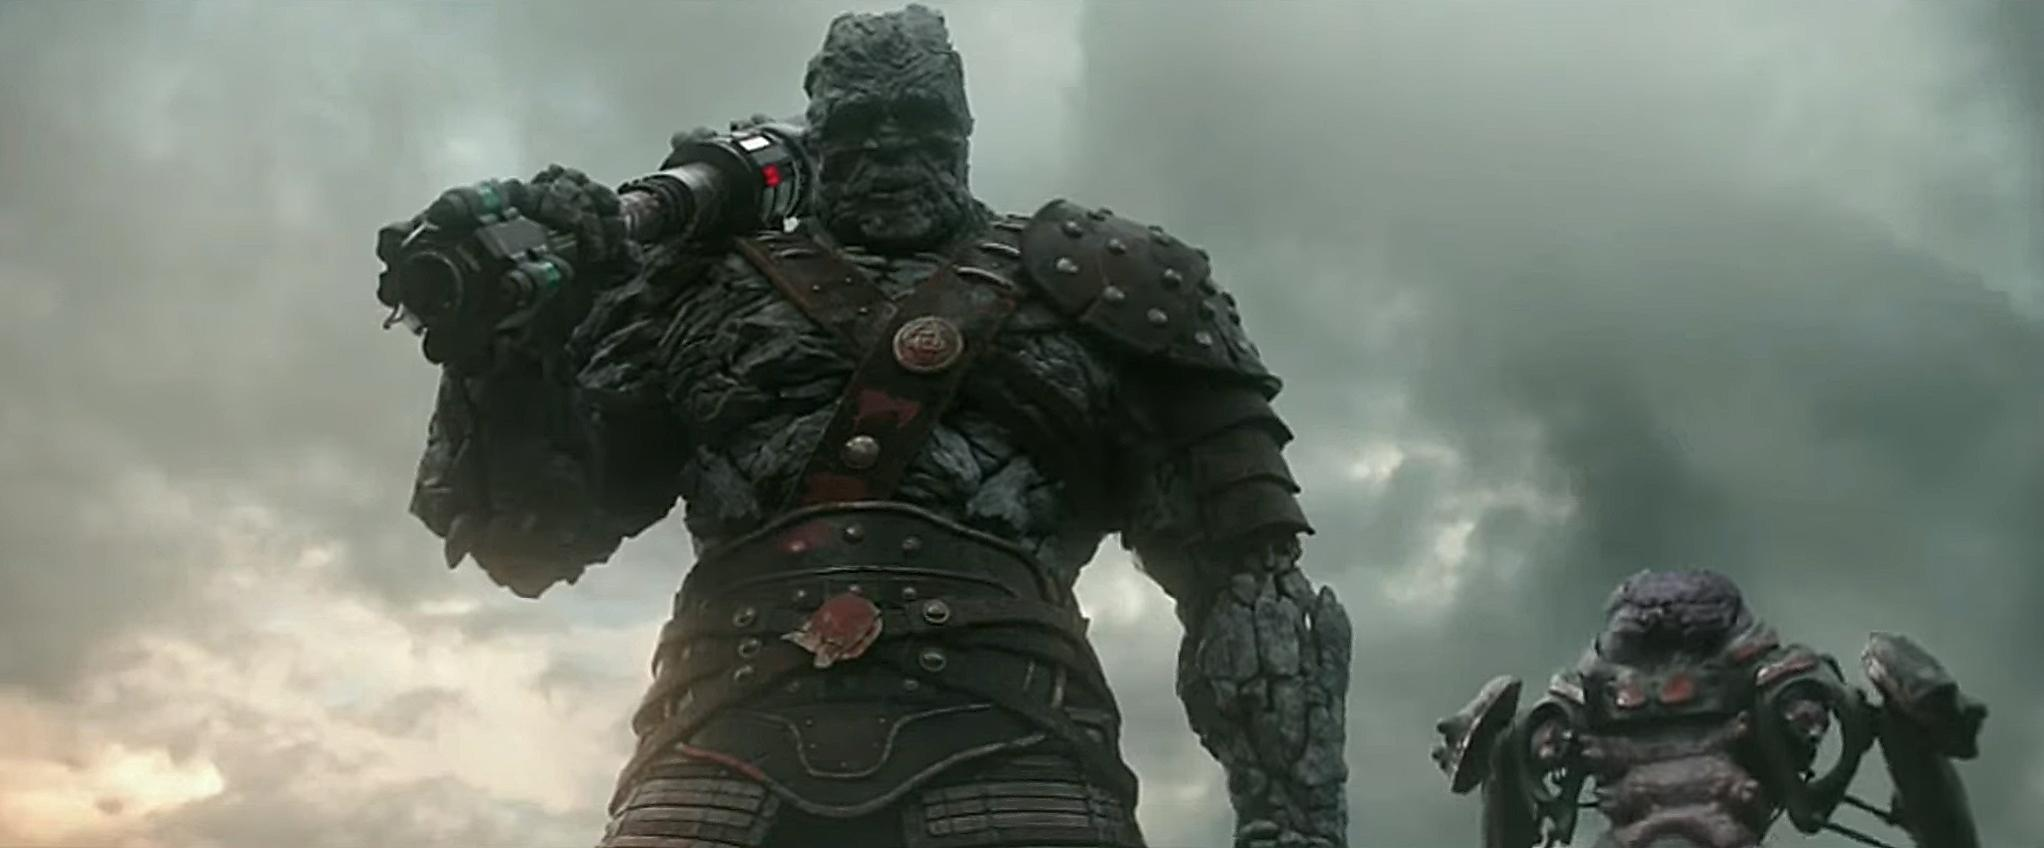 Marvel Promo Korg Returns in a New Revolution